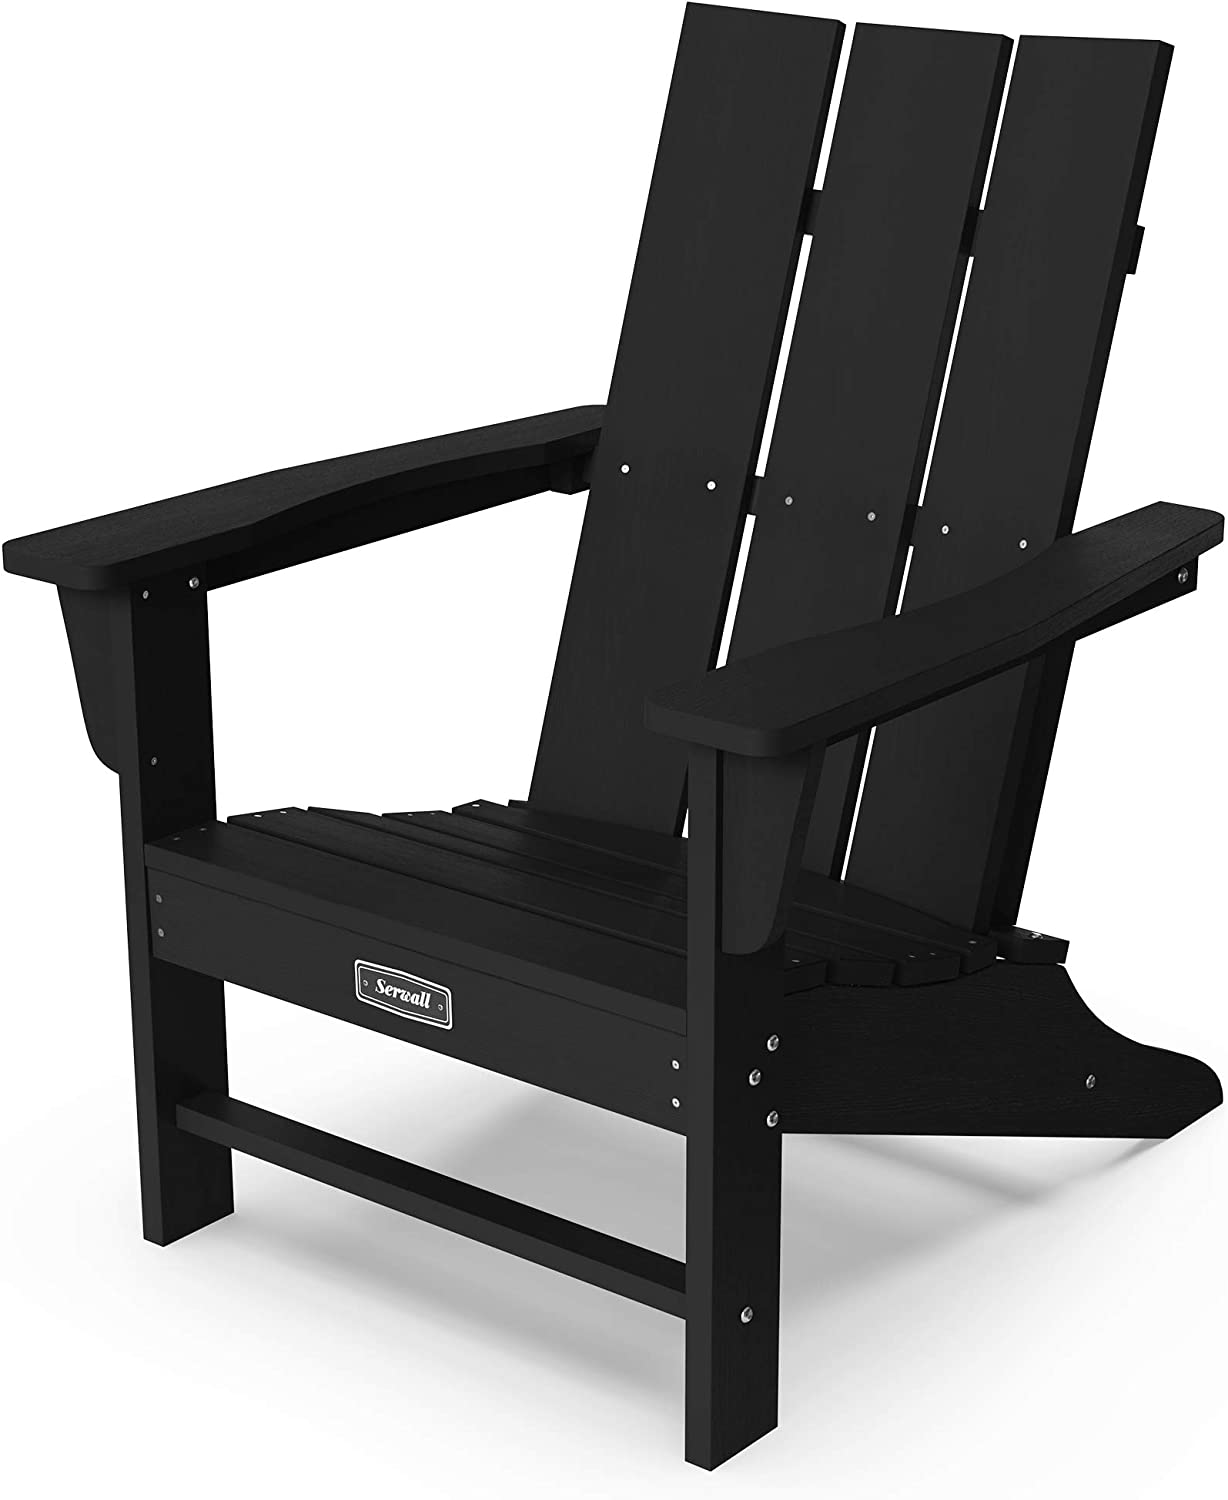 SERWALL Adirondack Chair Plastic Outdoor Classic Chair Weather Resistant for Patio Garden-Black